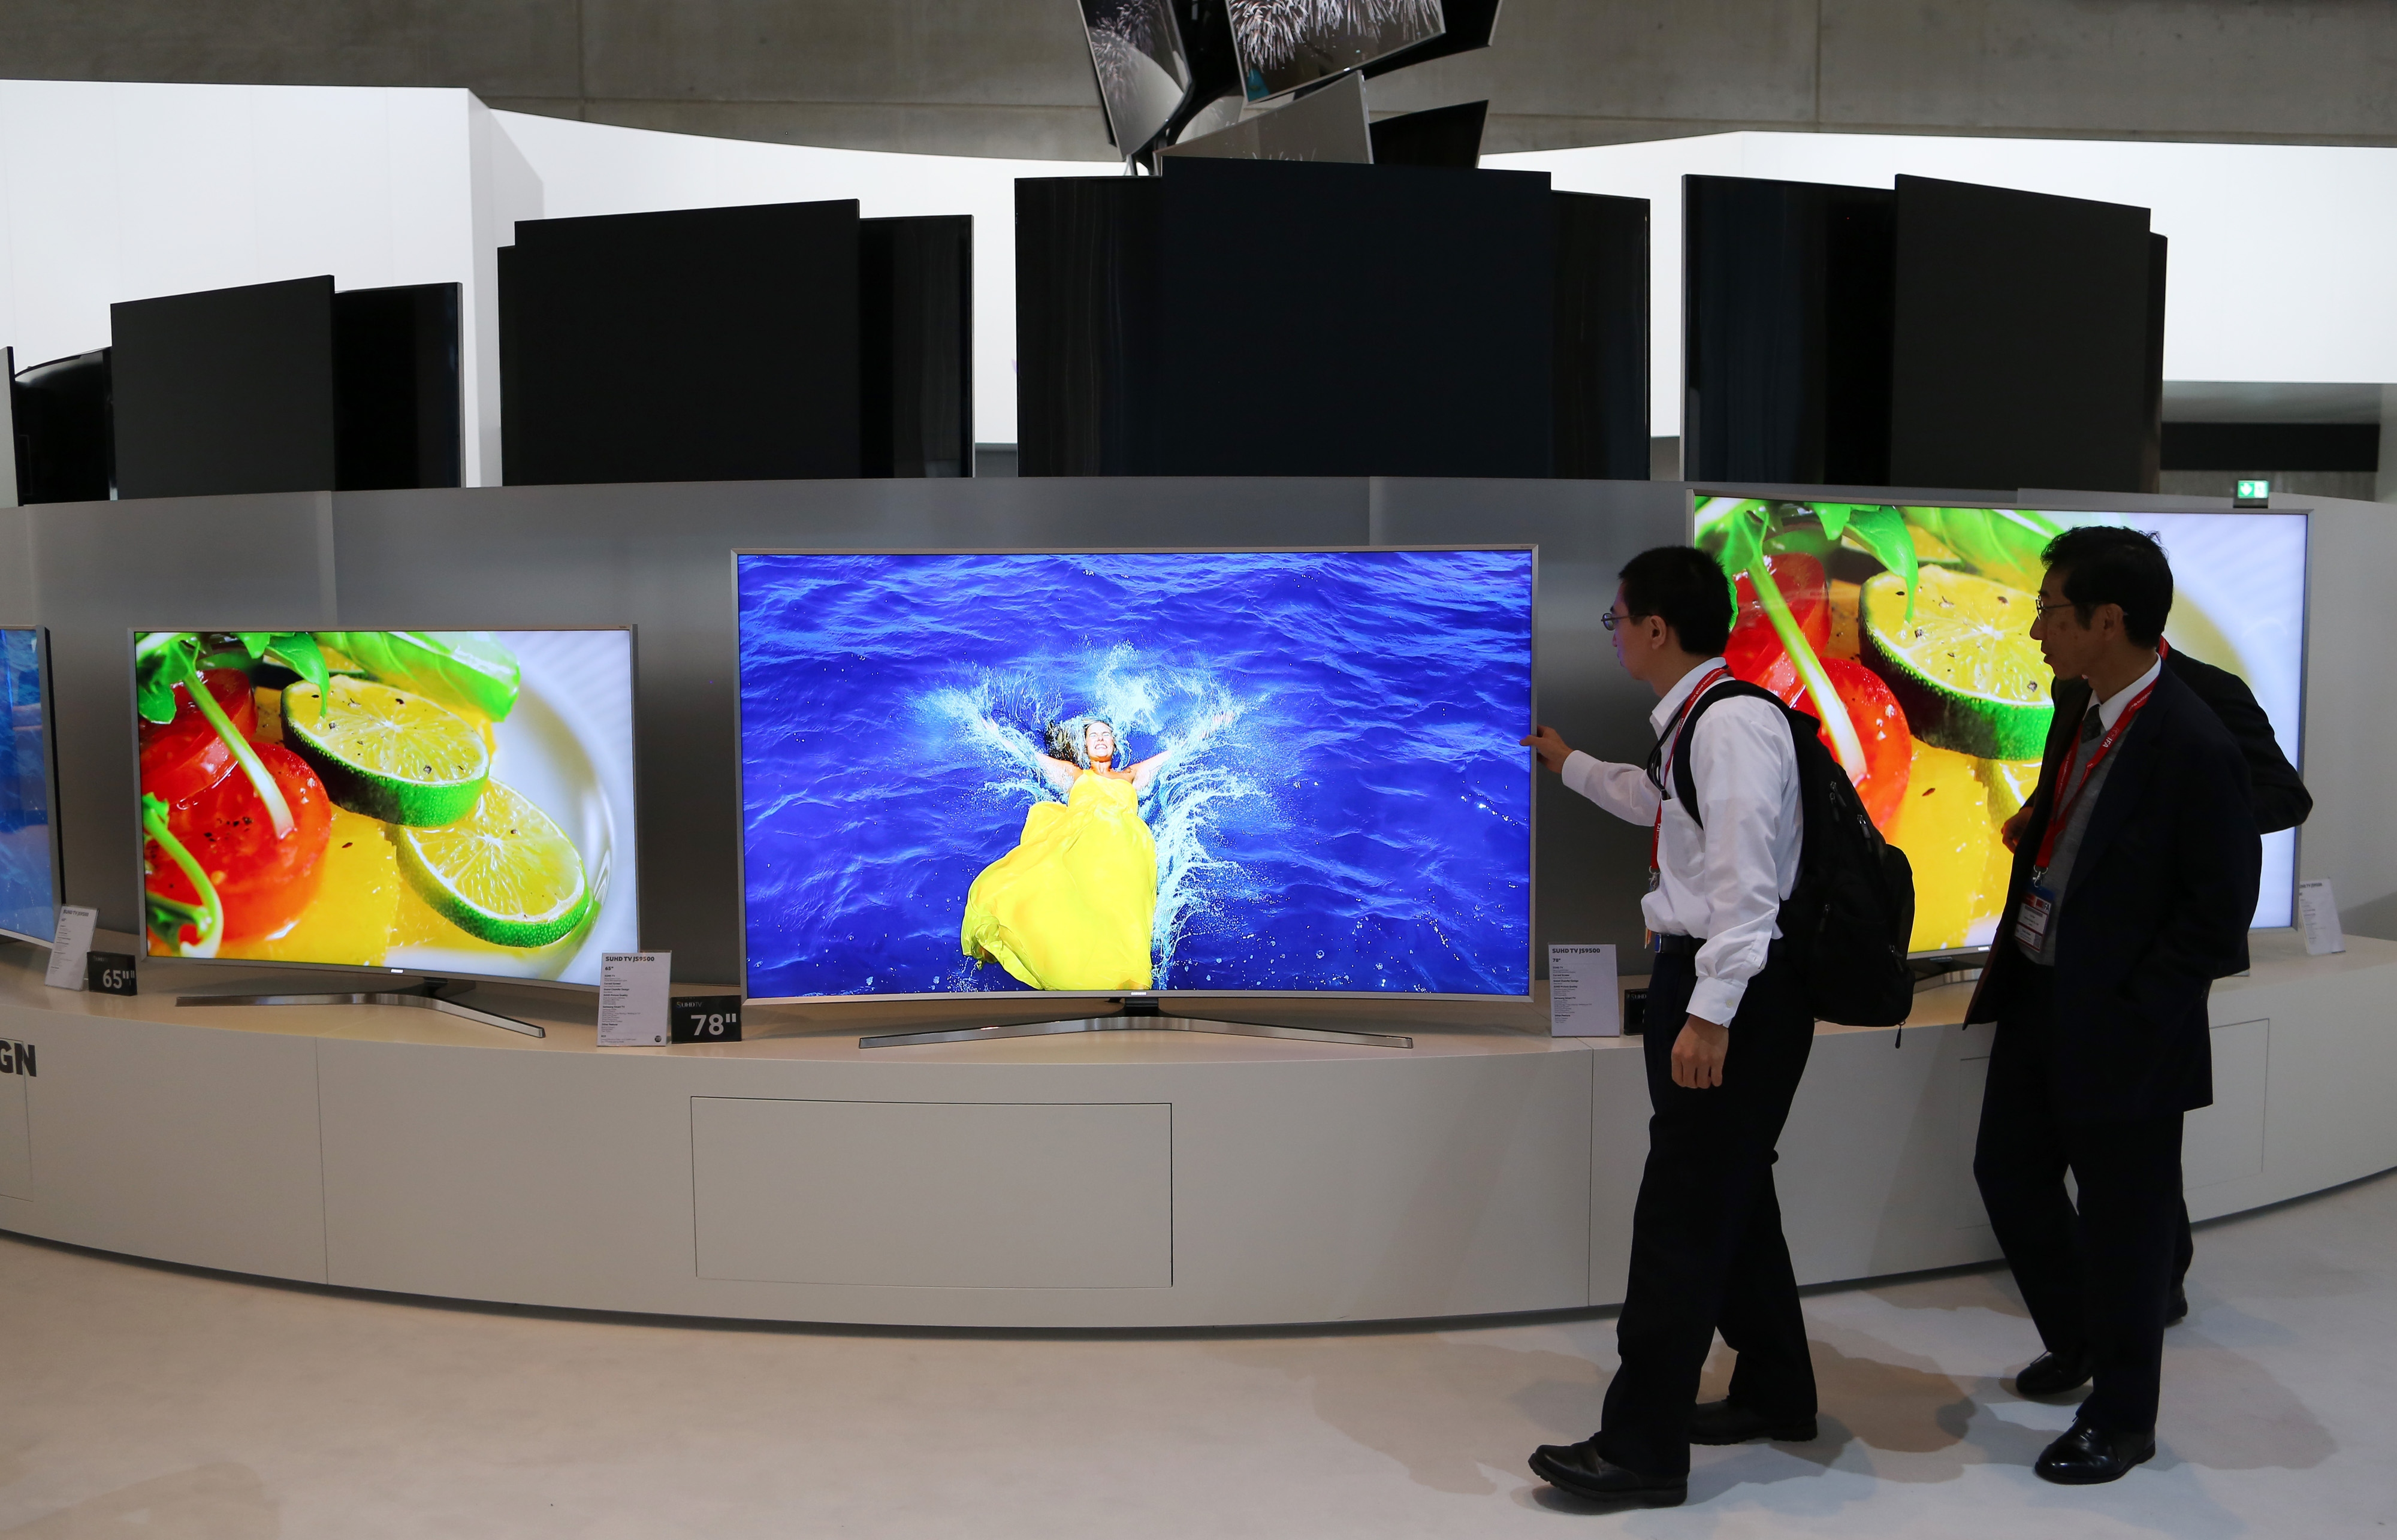 Wearable Technology And The Latest Gadgets On Display At The IFA International Consumer Electronics Show